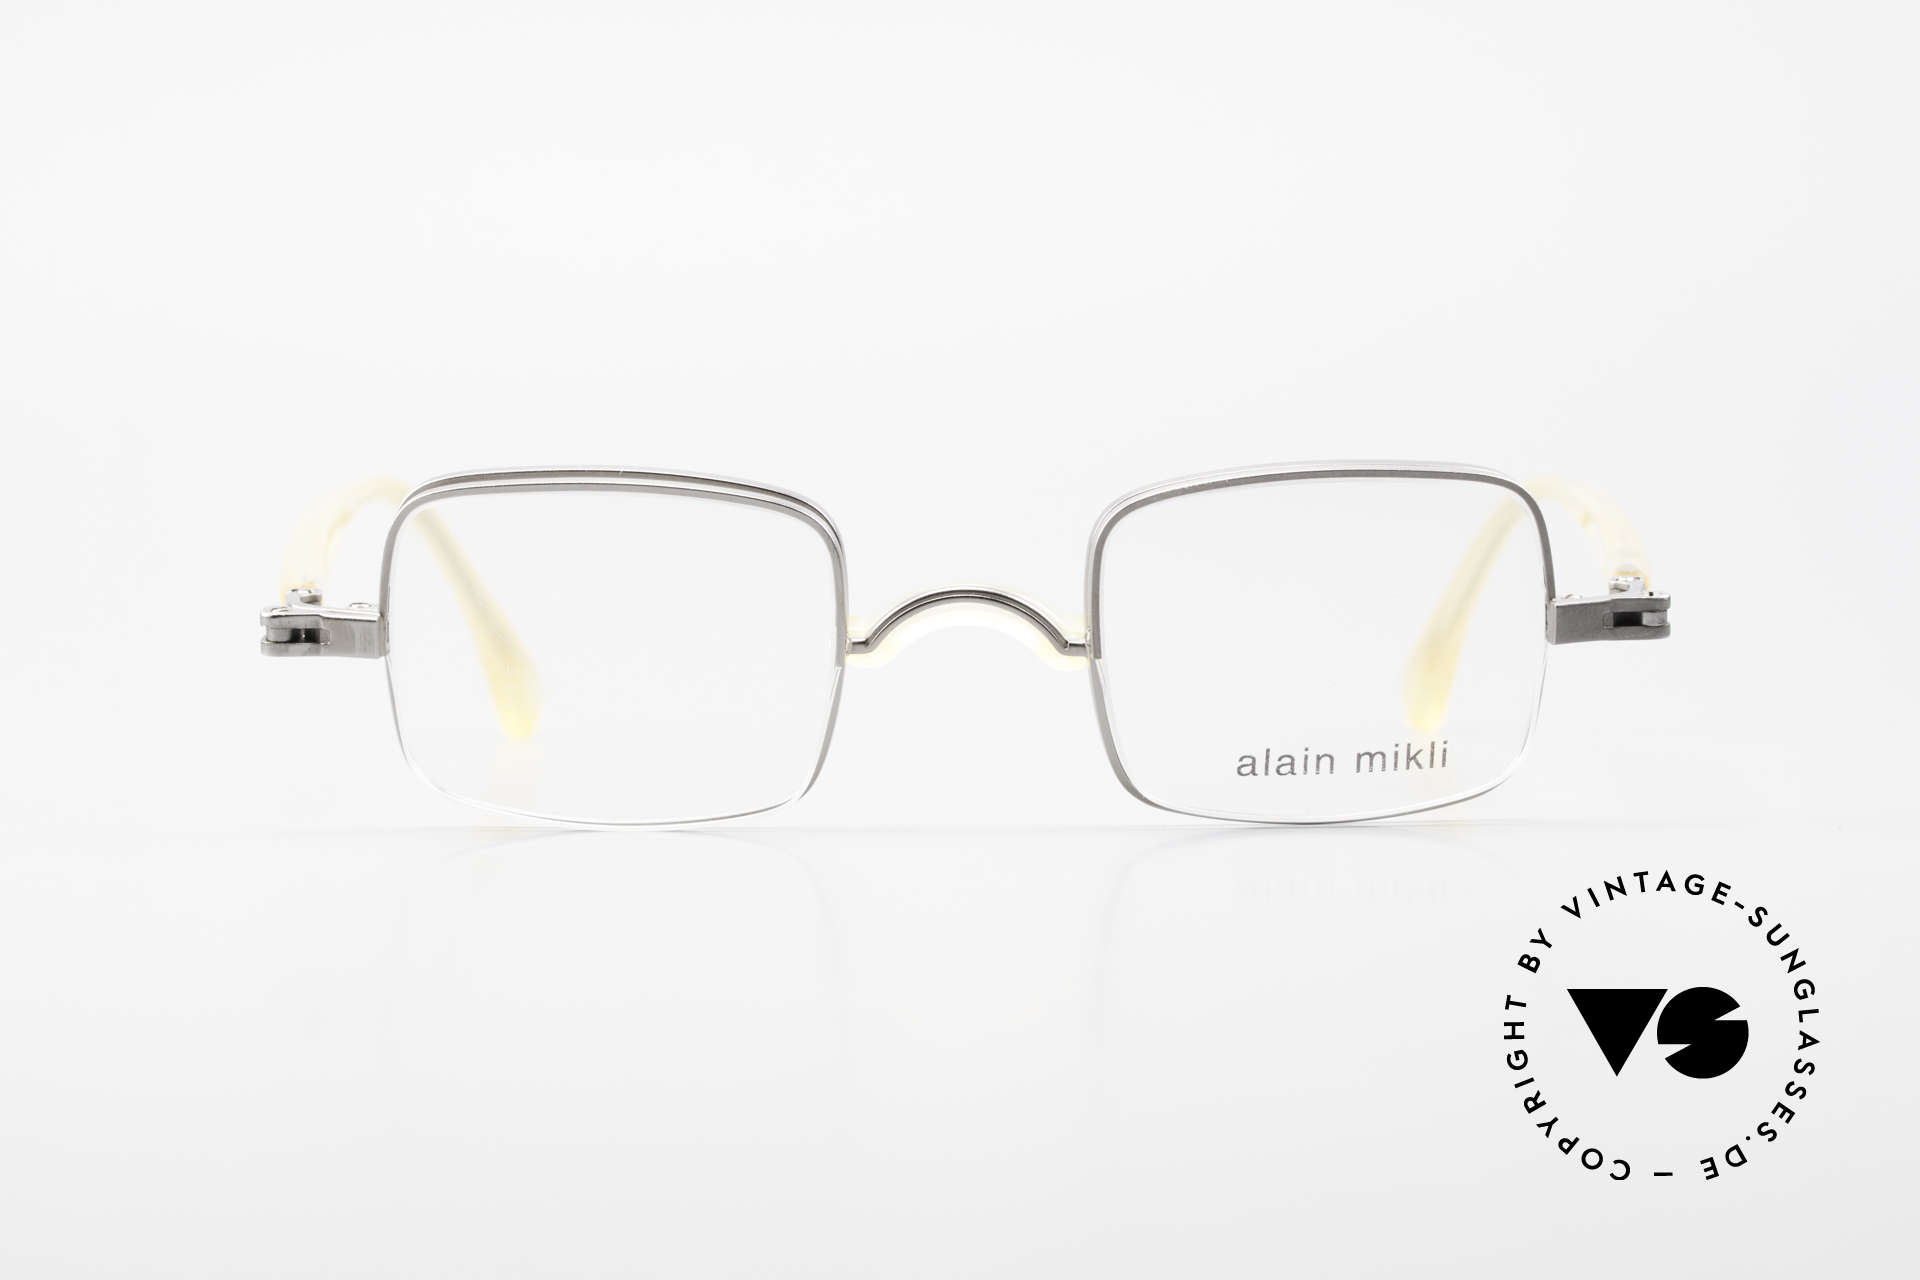 Alain Mikli 0115 / 01 Hinged Lenses 2 in 1 Glasses, hinged frame for two kinds of prescription lenses, Made for Men and Women